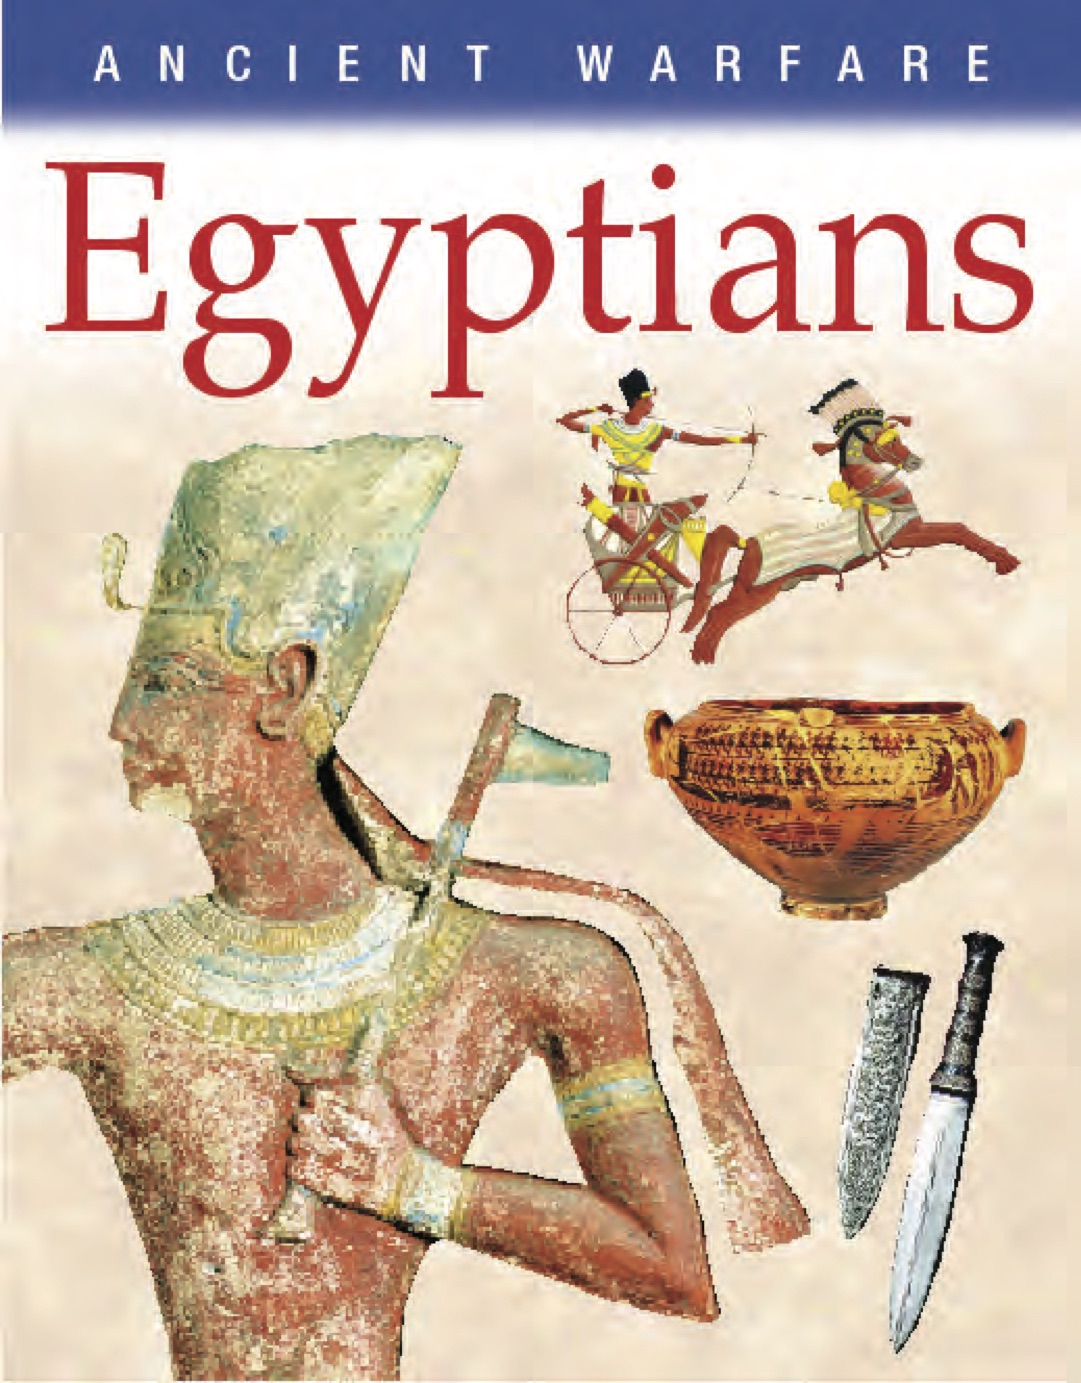 Ancient Warfare: Egyptians